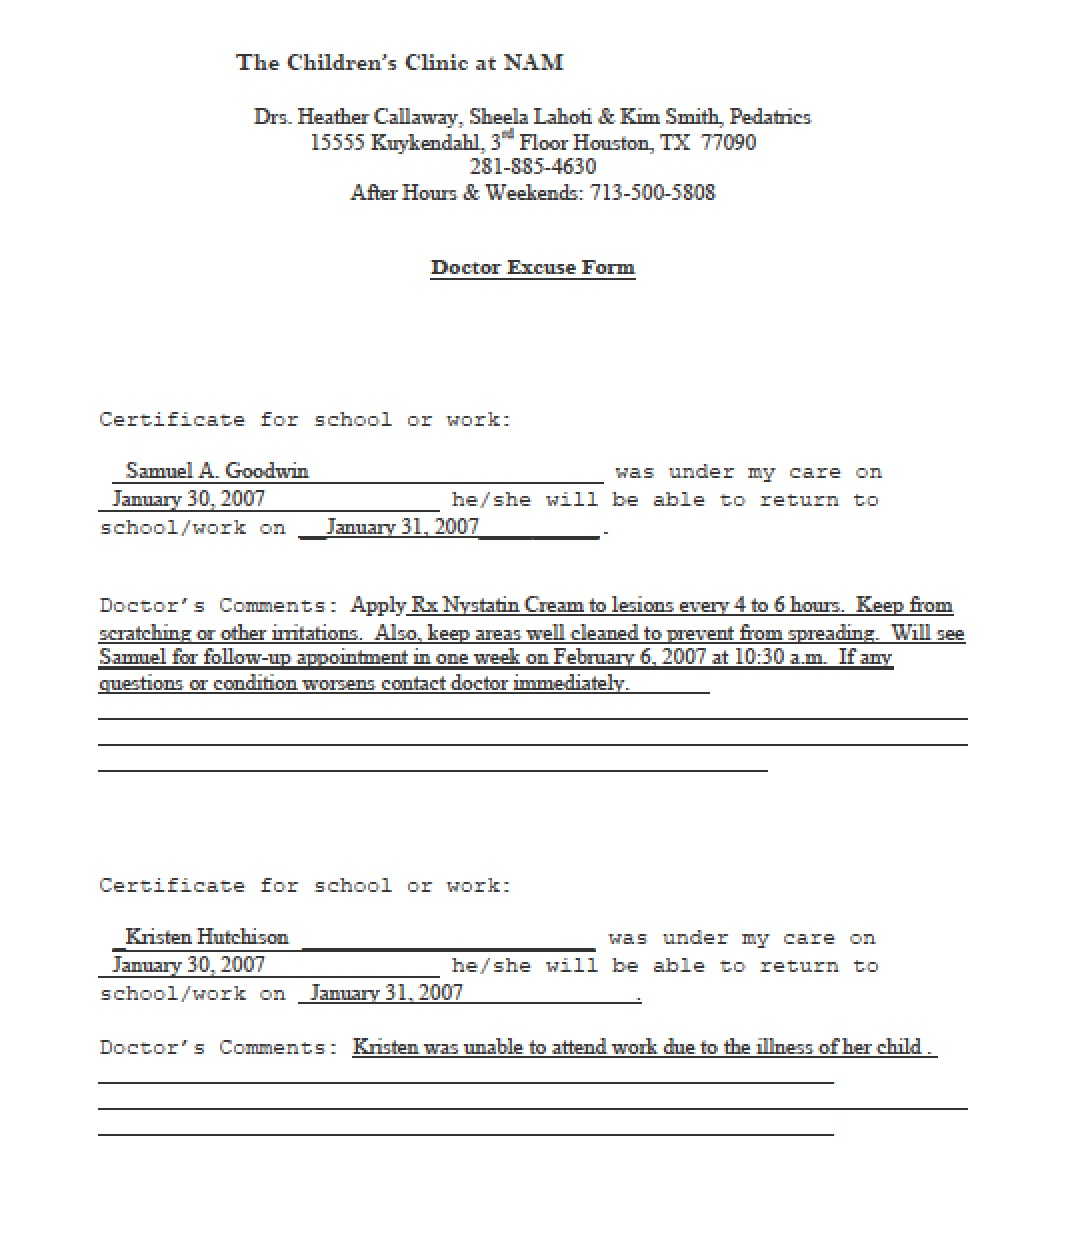 Doctors note template download doctors note templates pdf rtf word wikidownload altavistaventures Gallery